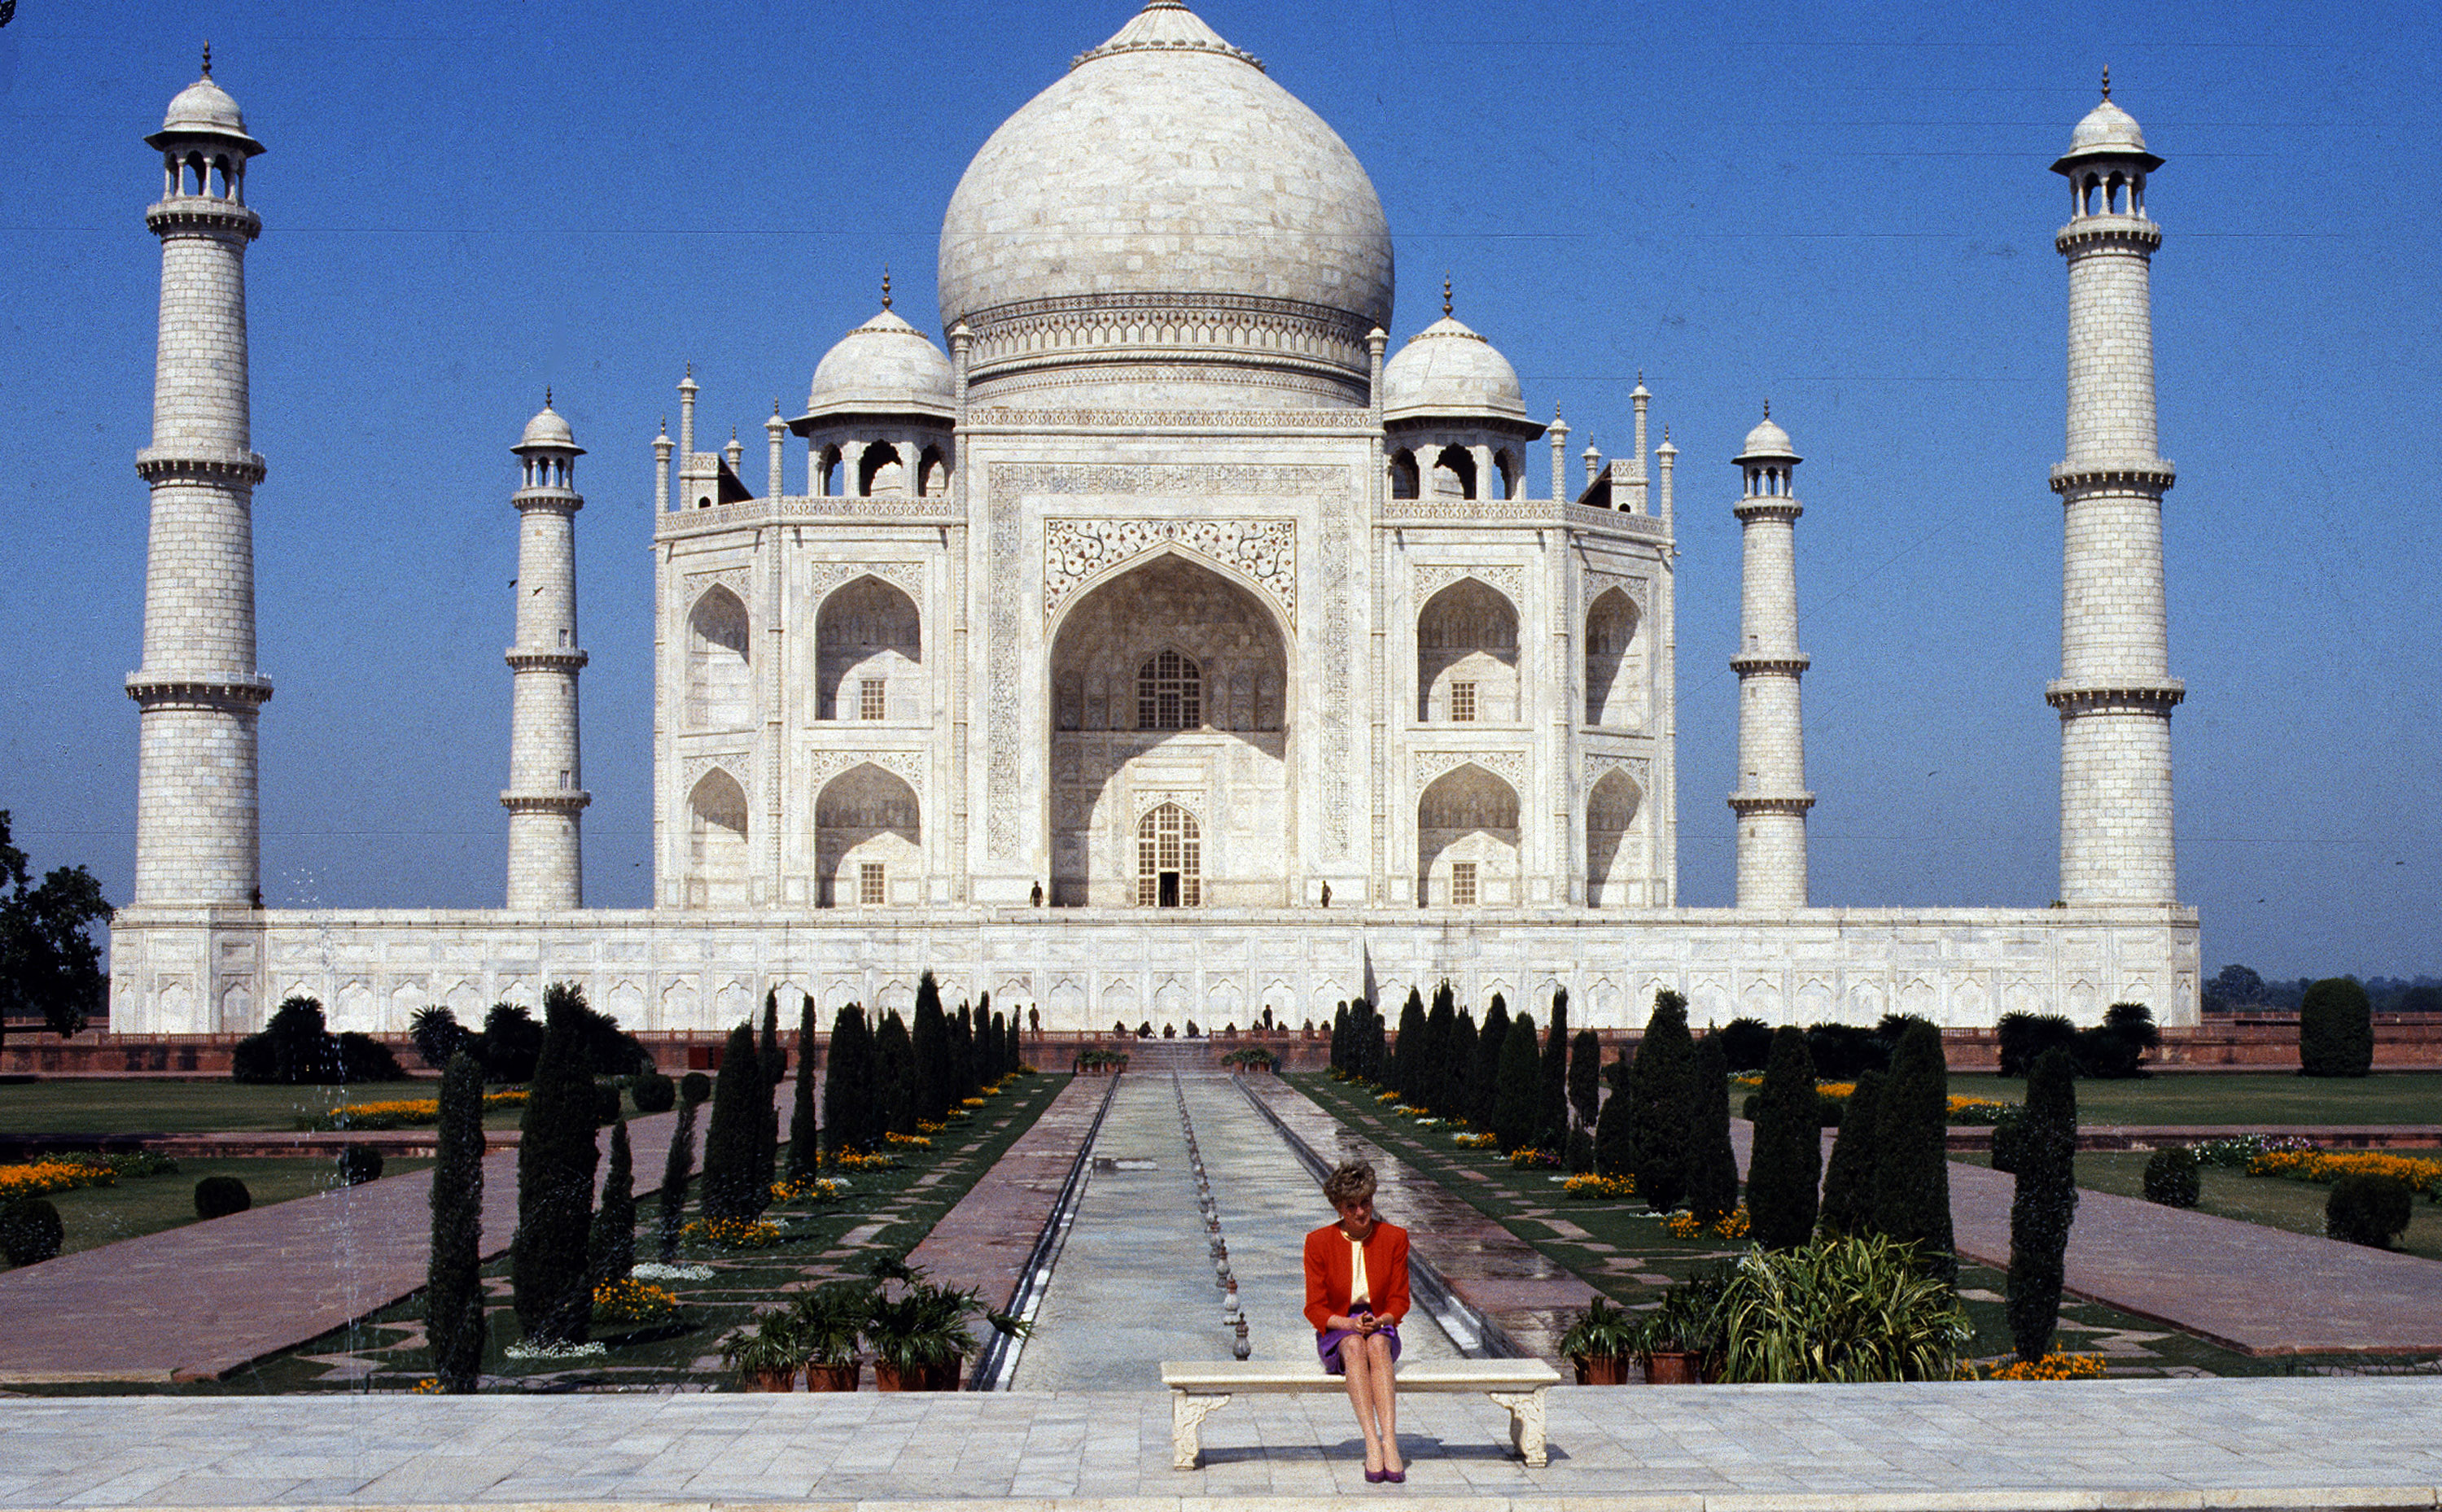 Diana, Princess of Wales, poses alone at the Taj Mahal during her visit to India on Feb. 11, 1992